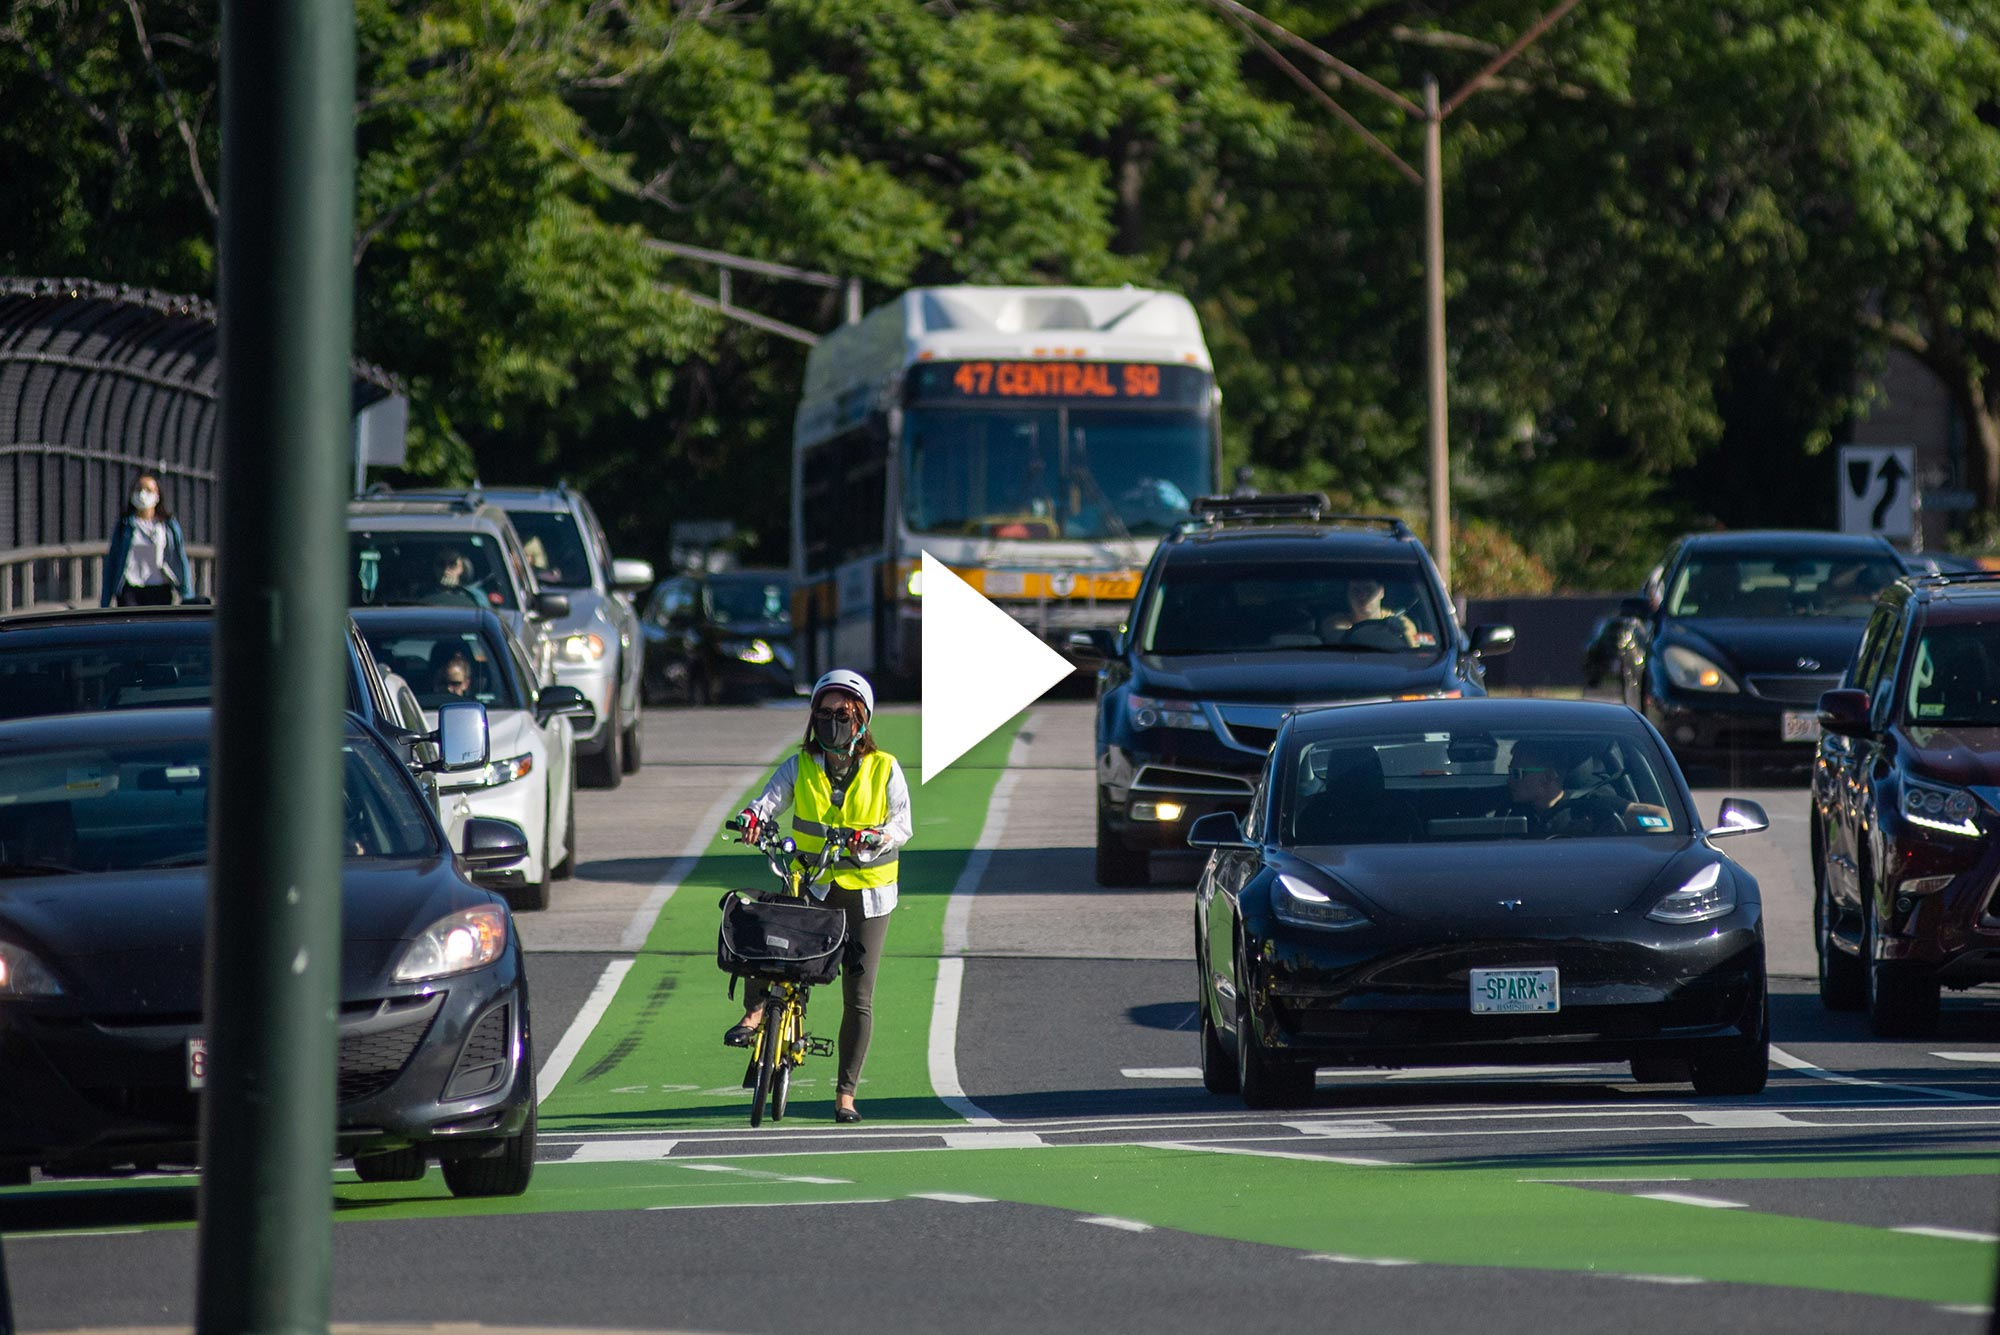 Photo of a person in a green vest and helmet on a bike waiting in a bike lane at a light. Many cars and city buses are seen around them. Overlay has video play button.